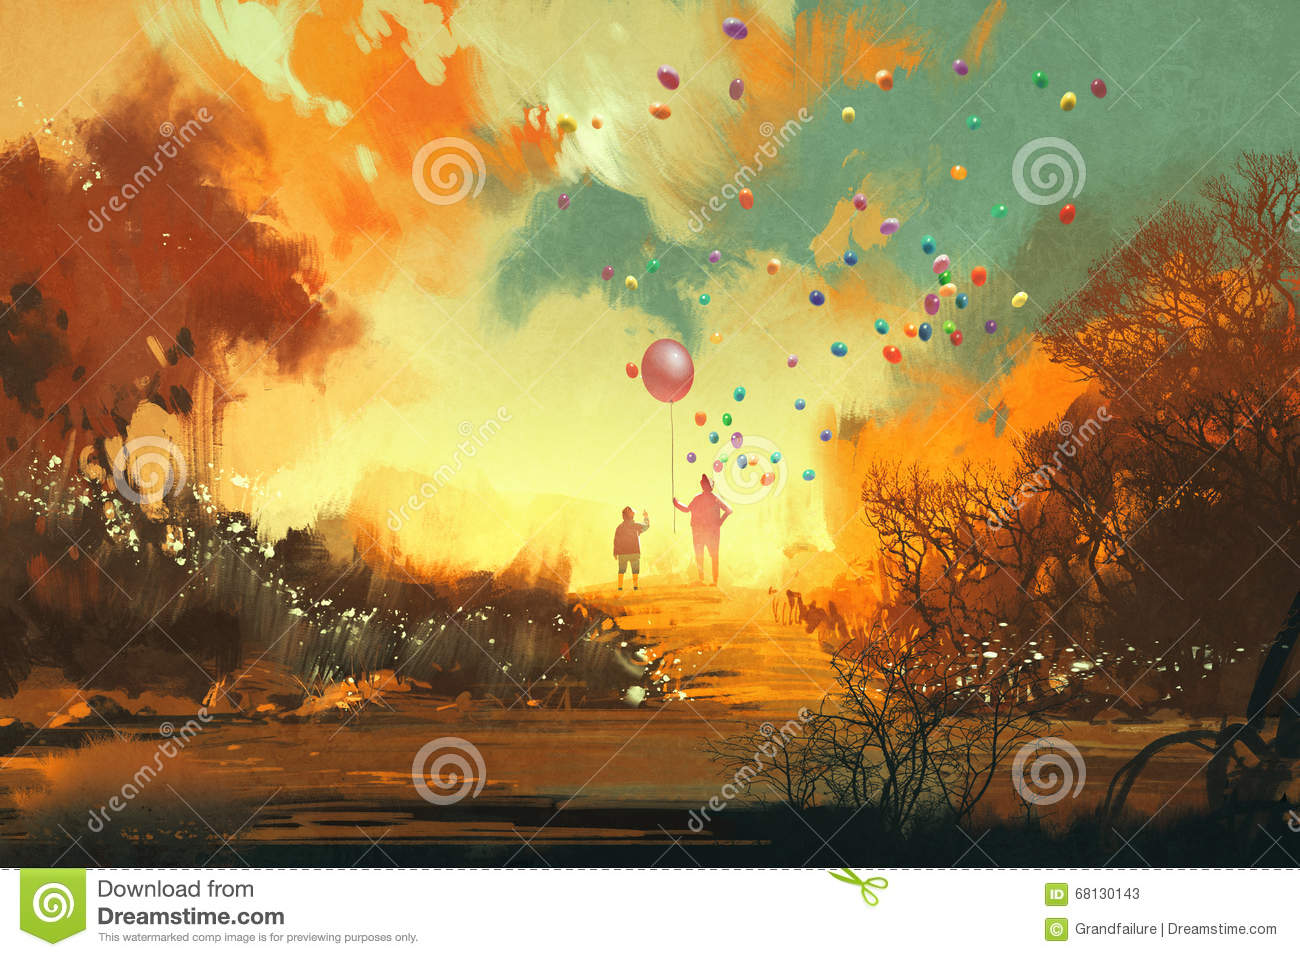 Boy and magician holding balloon standng on a path of fantasy land